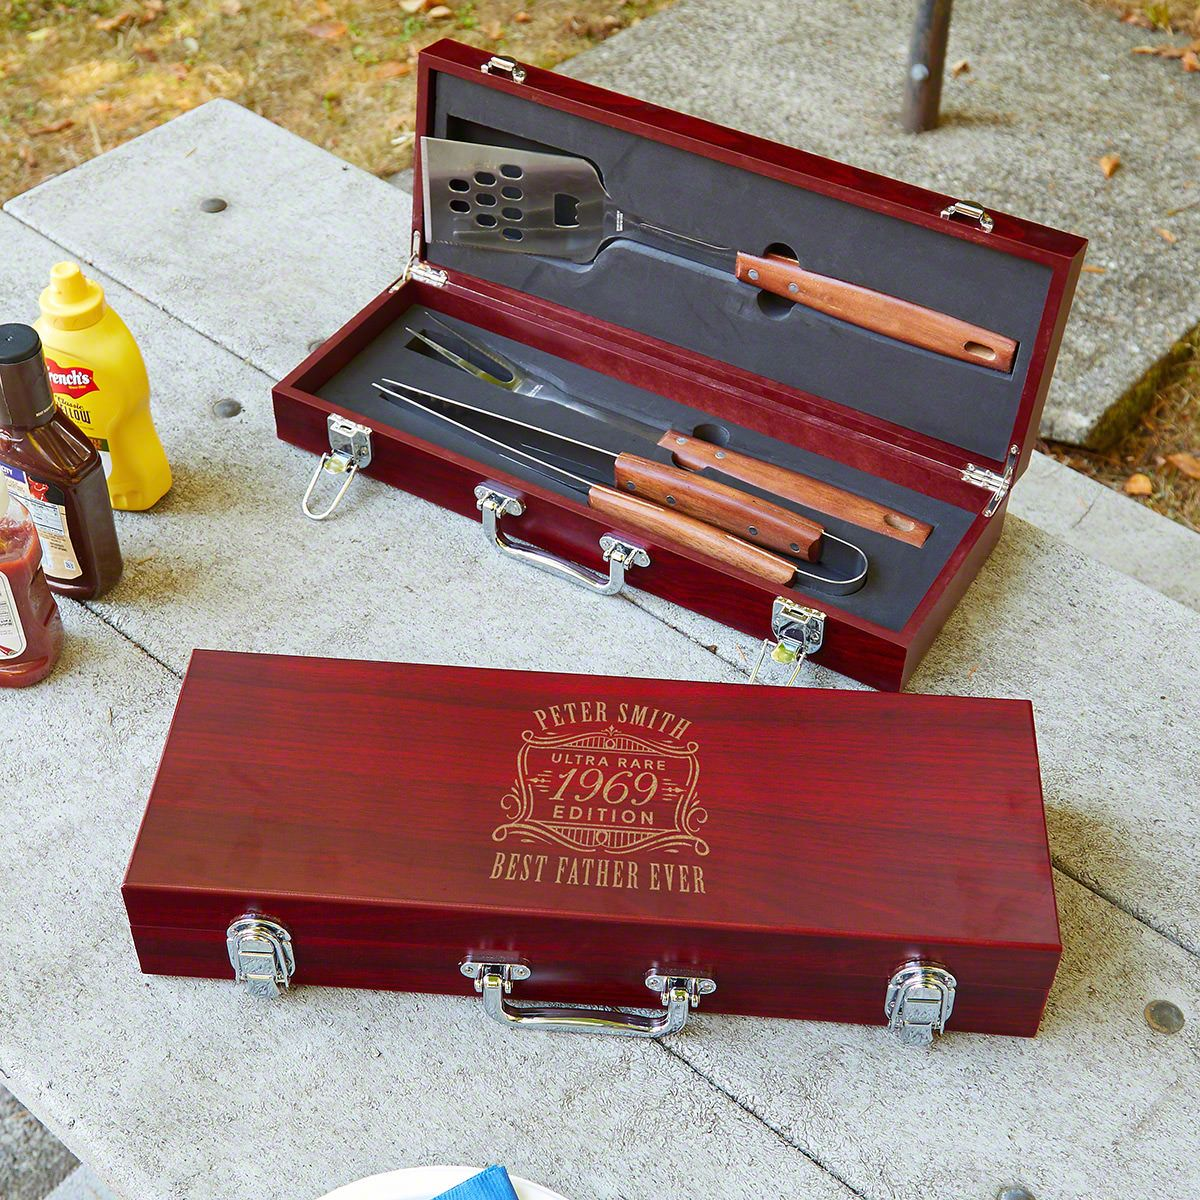 Ultra Rare Edition Personalized Set of Grilling Tools